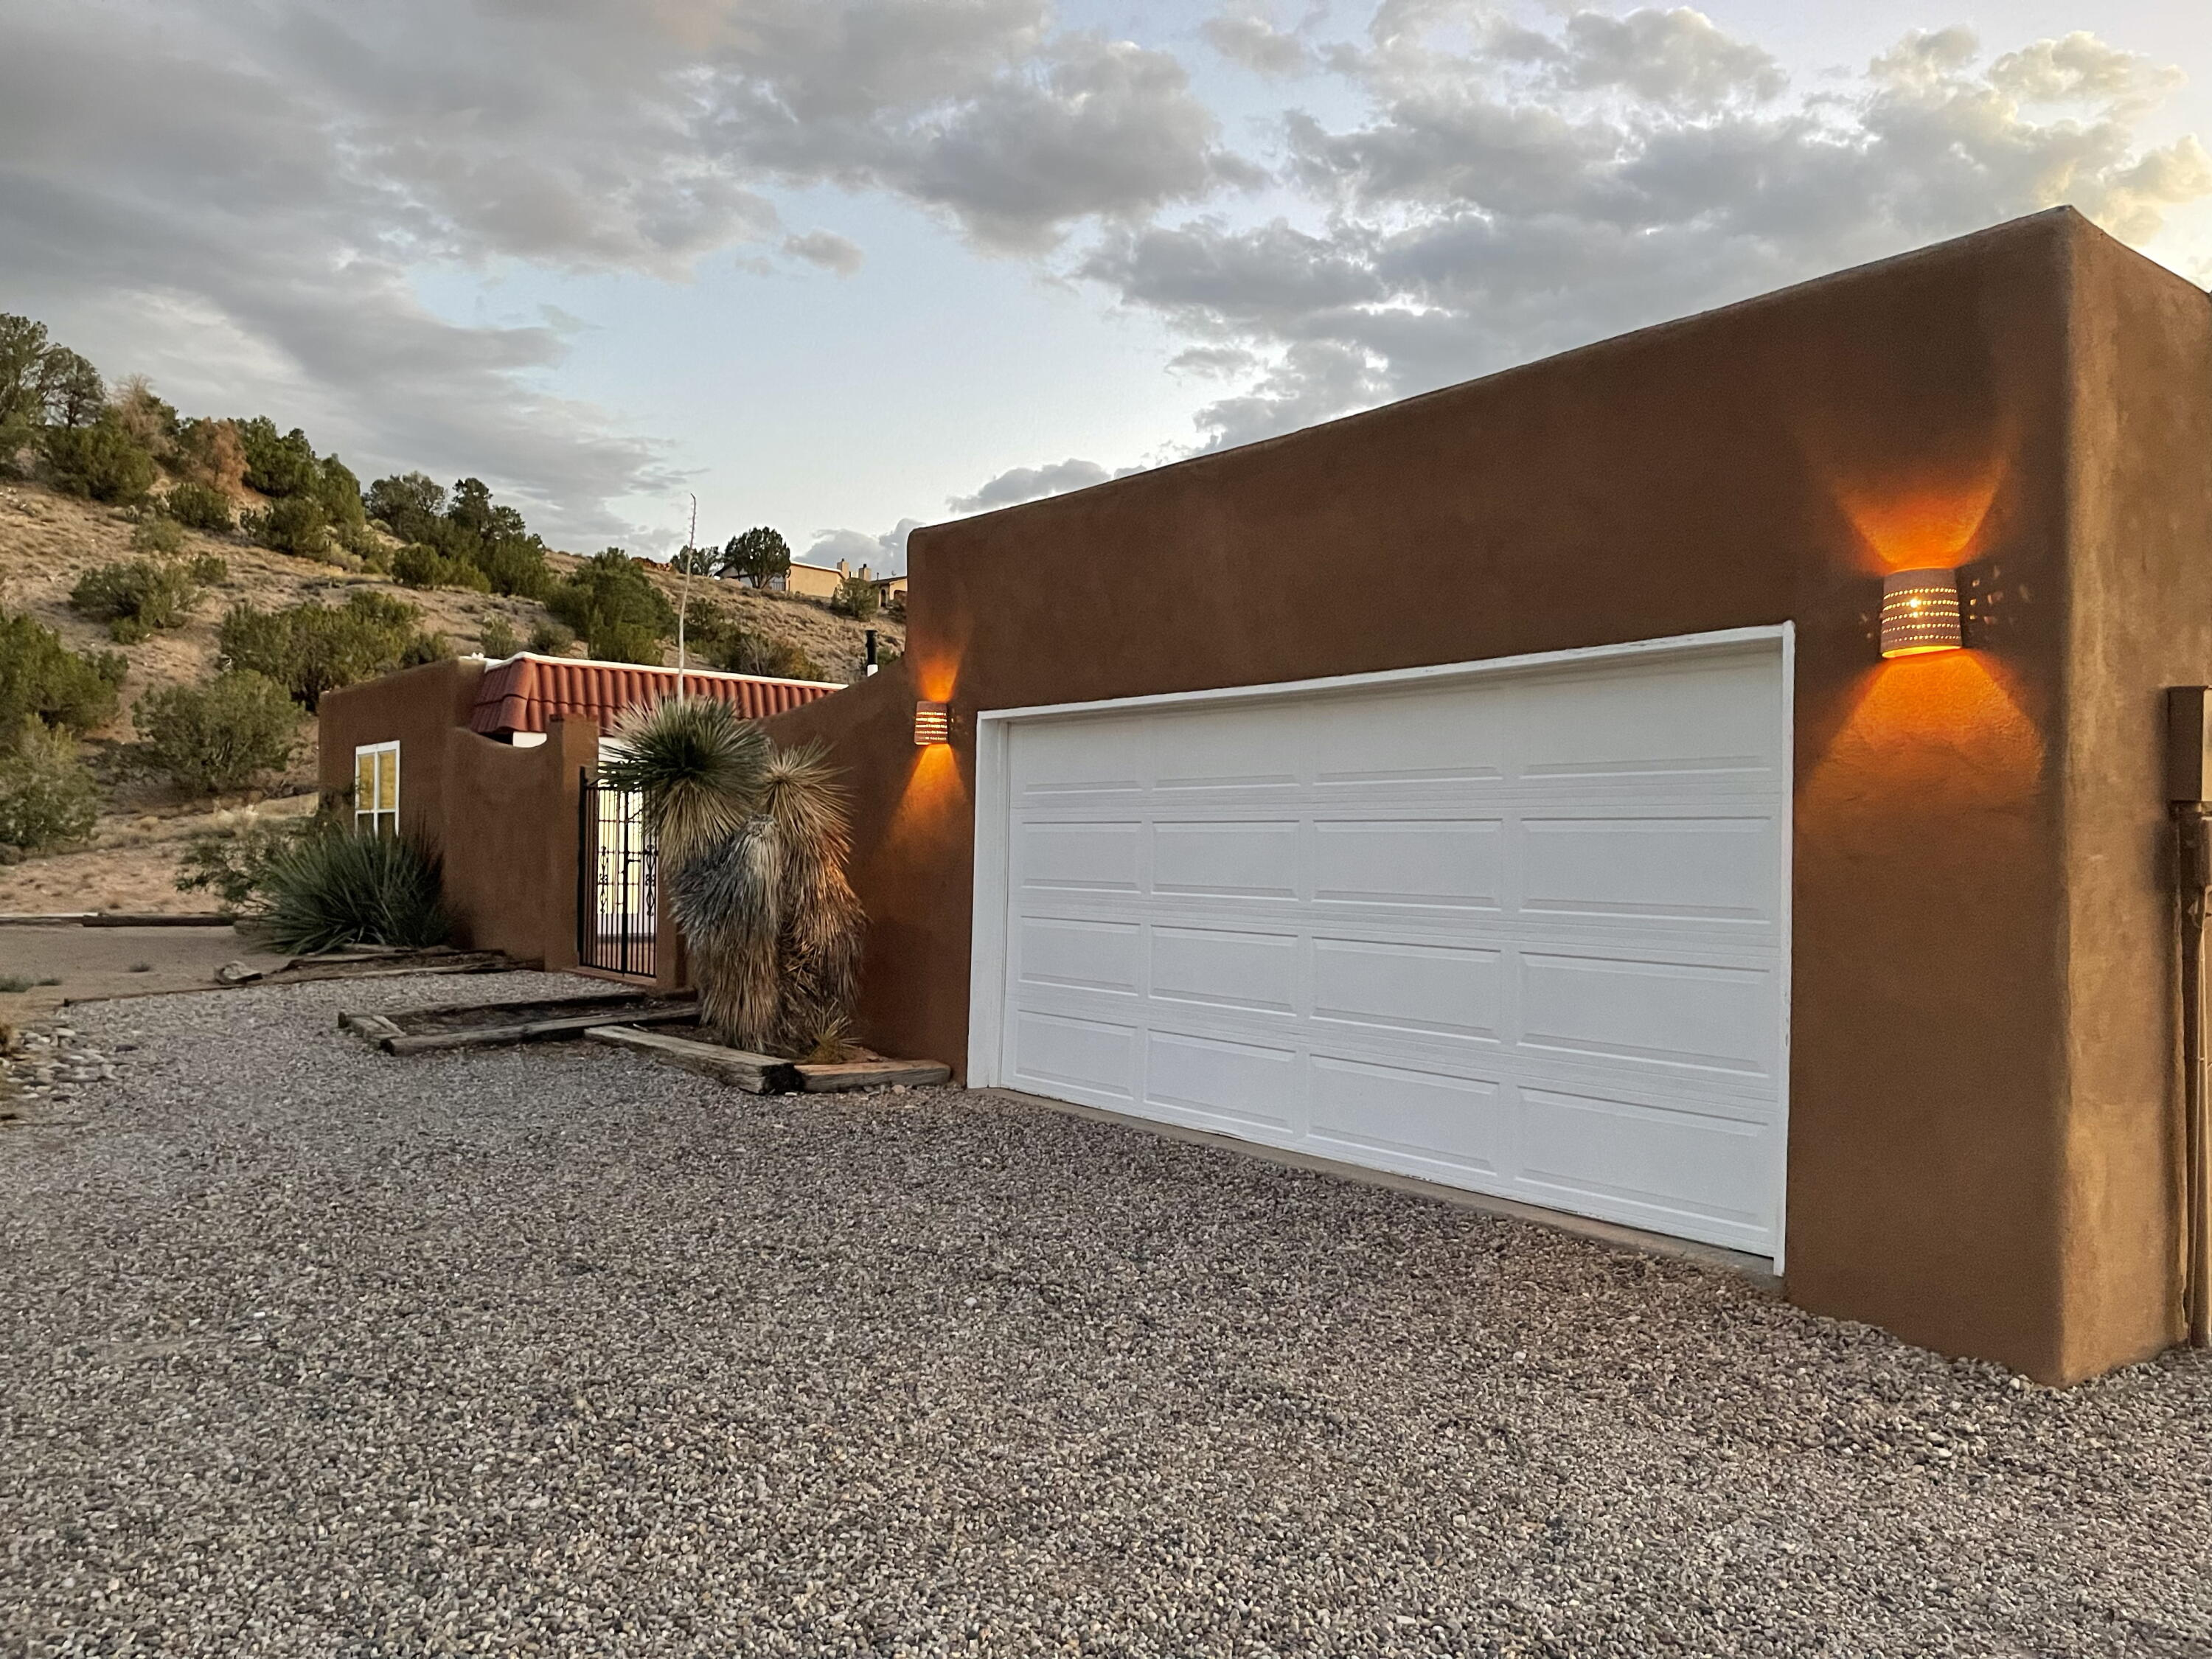 This Custom Southwest Style Home Offers Wonderful Mesa And Jemez Mtn. Views. The East Facing Front Red Bricked Courtyard Is Perfect To Enjoy The Morning Sun Or Evening Entertaining. Enjoy Beautiful Sunsets From The Extensive Side/Rear Veranda. Large Kitchen & Dining Areas. New Kitchen Appliances, Brick Floors & Cozy Wood Stove. Great Room Features Kiva F/P With Nichos. Newly Remodeled Bathrooms with New Flooring and Carpet. 3 BRs and more space. 28x24 Multi-use Building-Heated, Cooled, & Overhead Door, 220 Outlets available. Wonderful House with Open Feel, for an Amazing Price!!